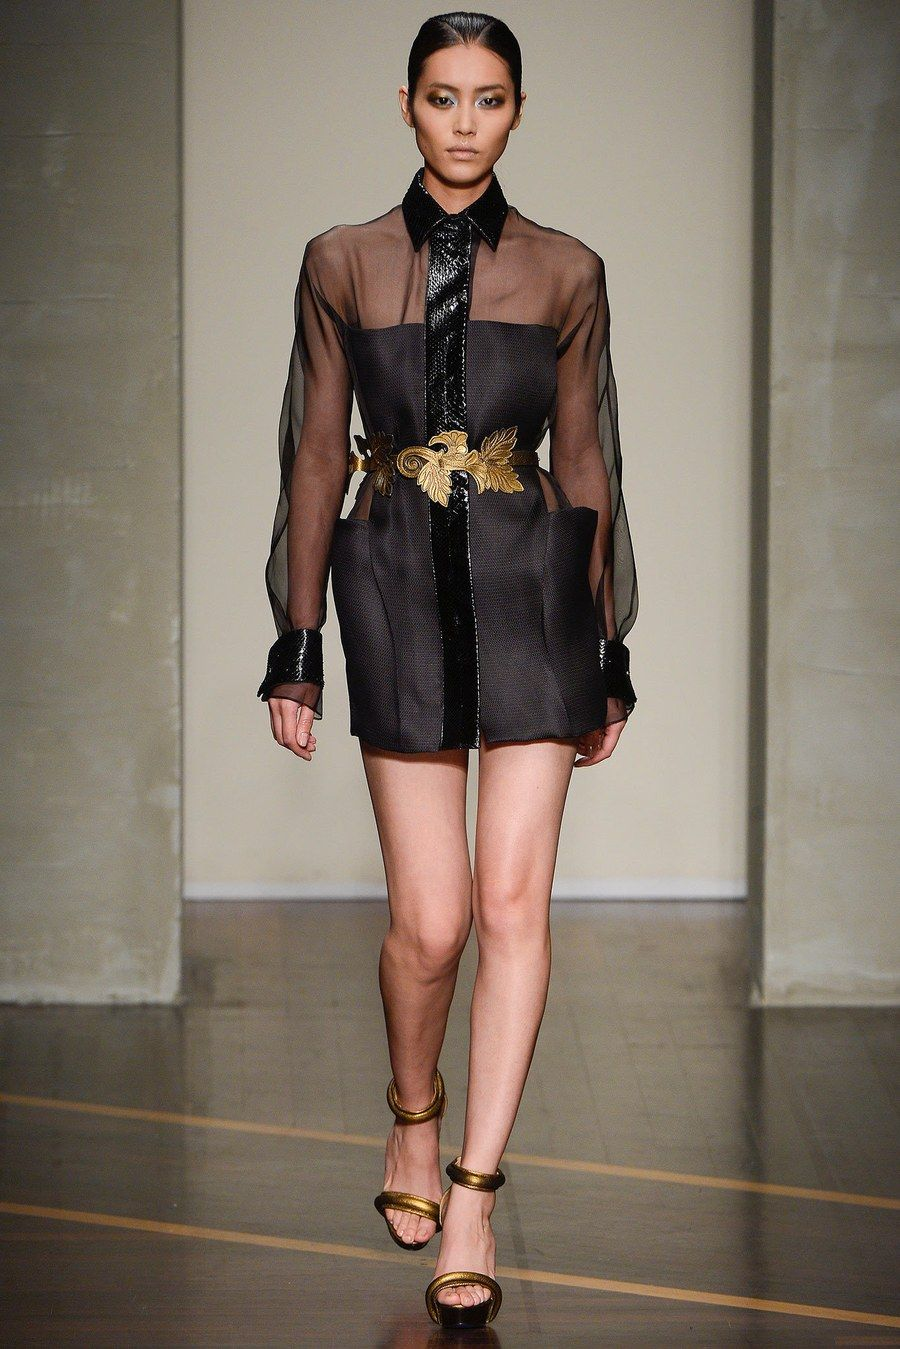 2019 year style- Ferre gianfranco fall runway review